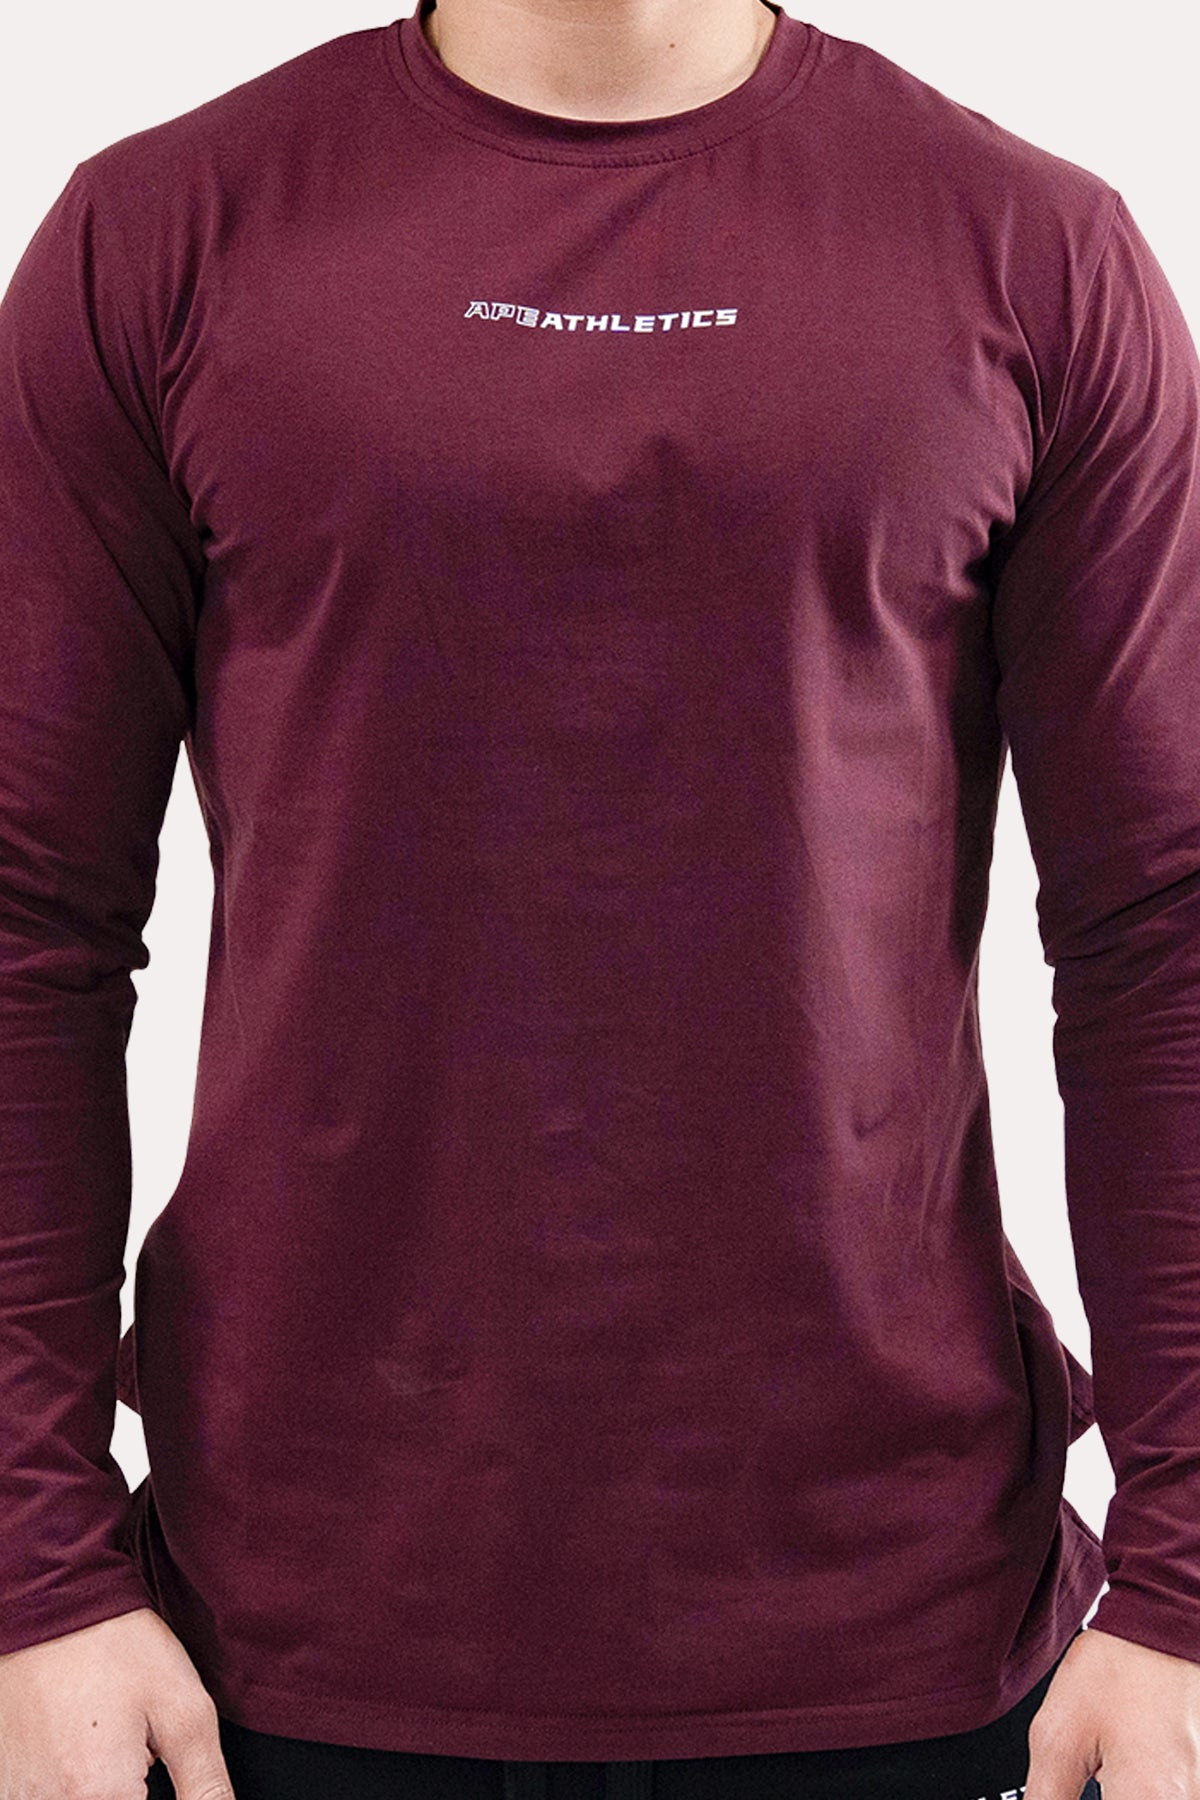 Panel Long-Sleeve - ApeAthletics Merlot